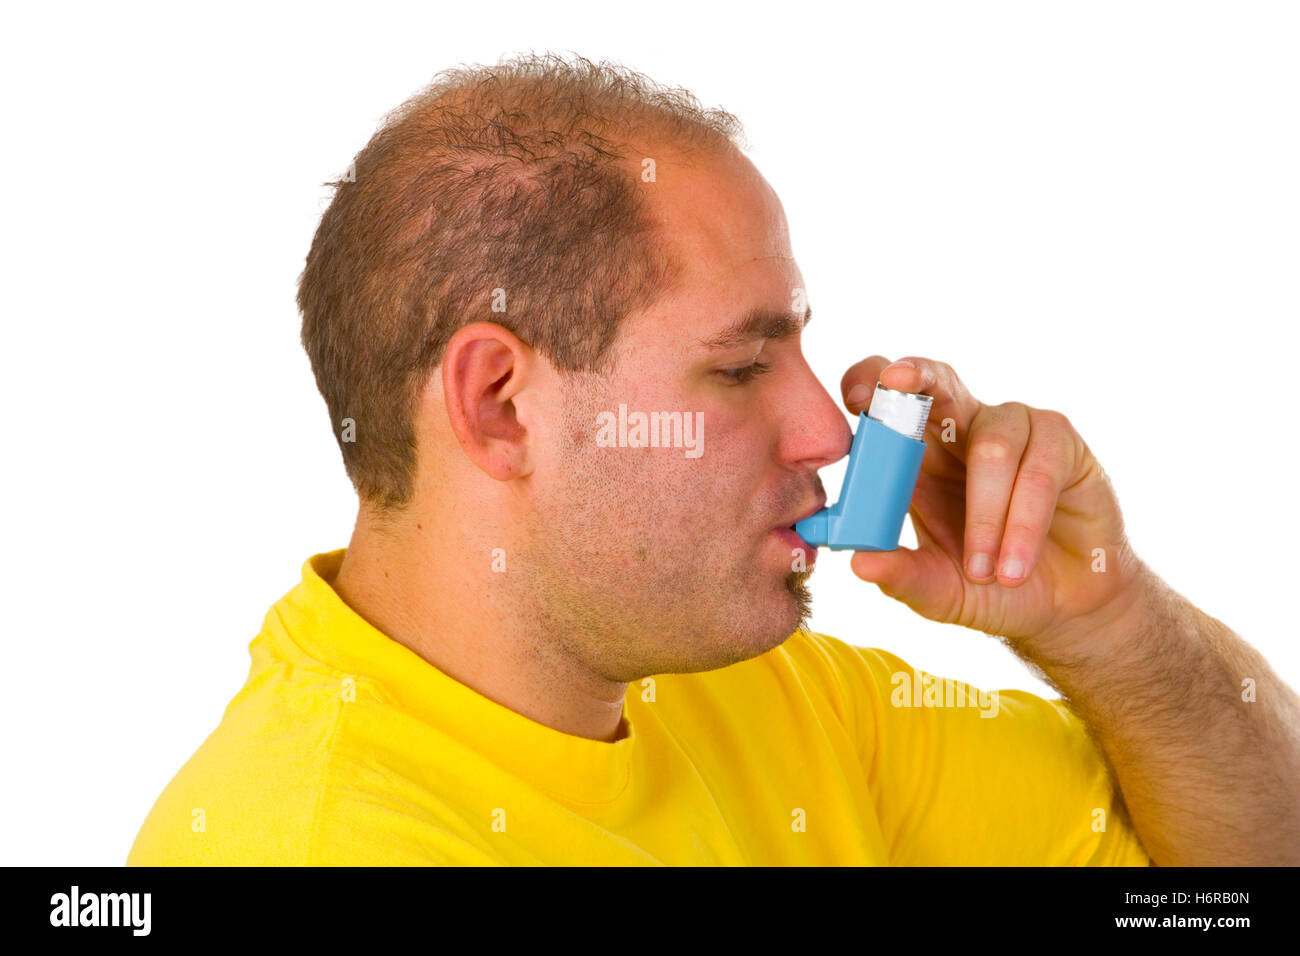 young man with metered dose inhaler - Stock Image